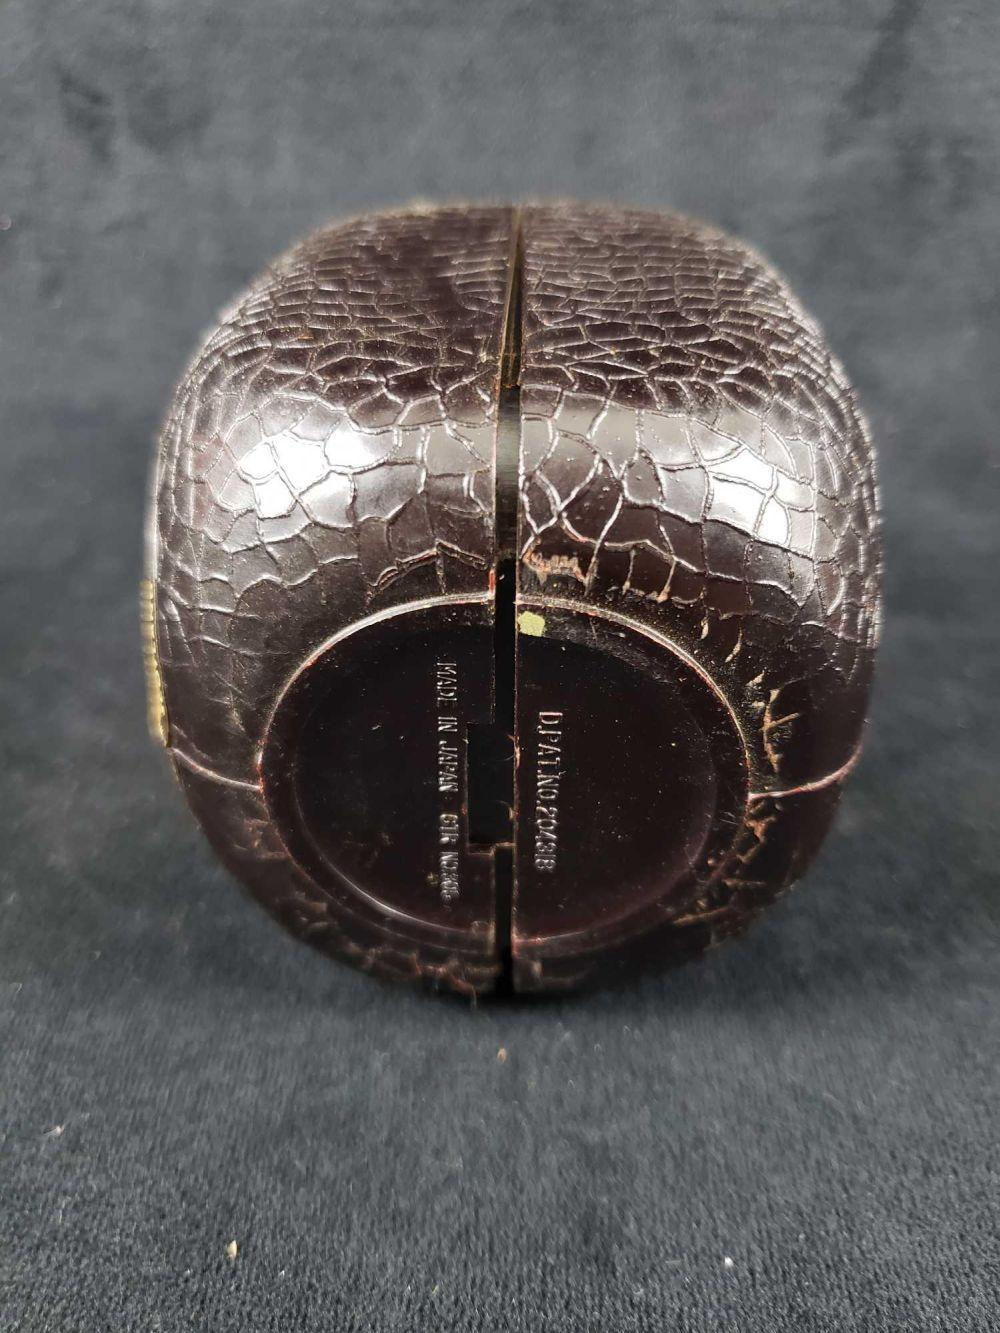 Lot 533: Grand Old Parr Deluxe Scotch Whisky Transistor Radio Bottle